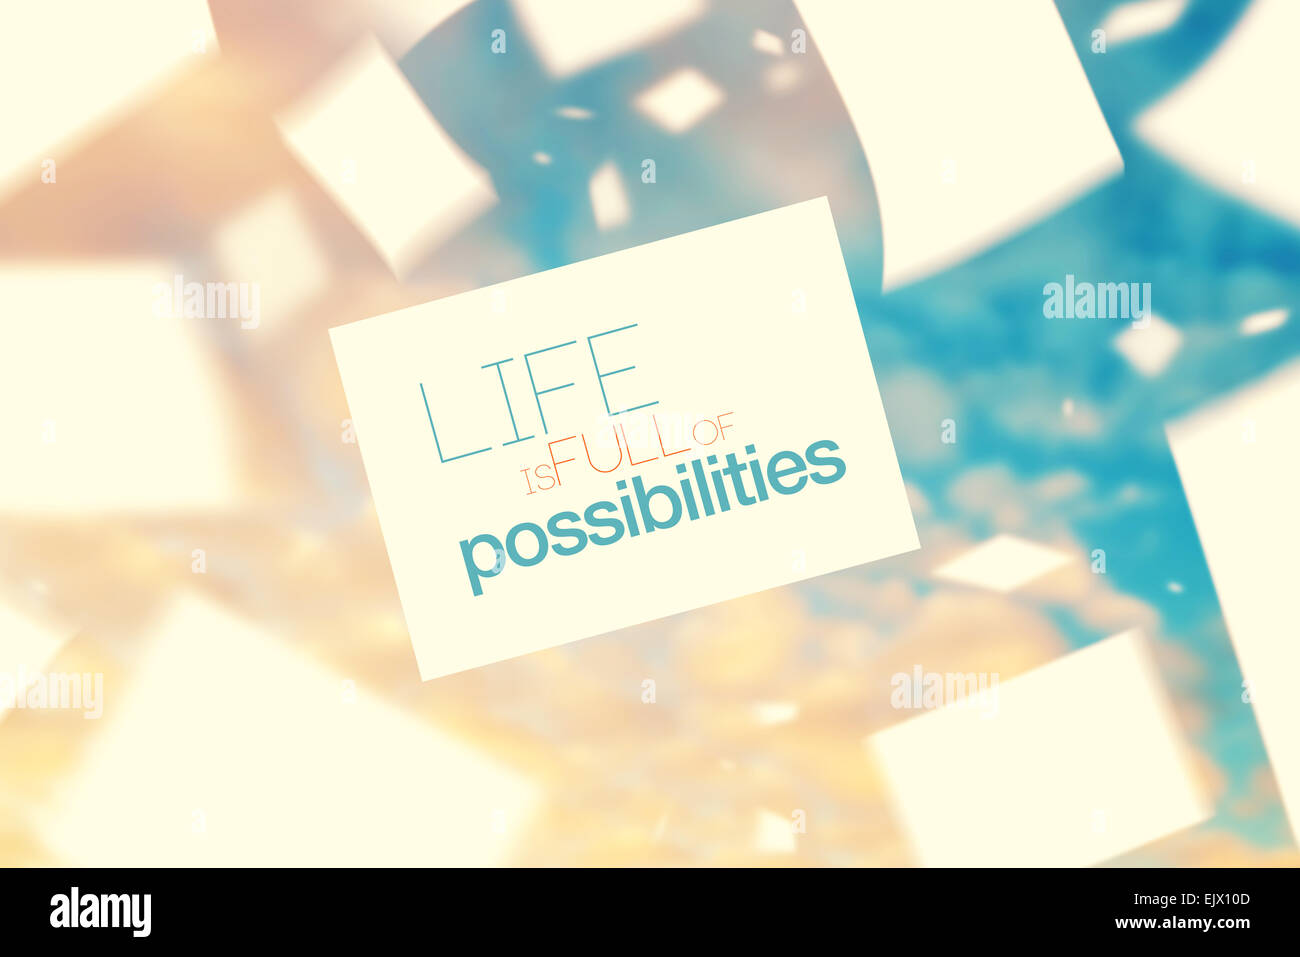 Life is Full of Possibilities Inspirational Quote on Vintage Paper Floating on The Wind in The Air, Retro Instagram - Stock Image